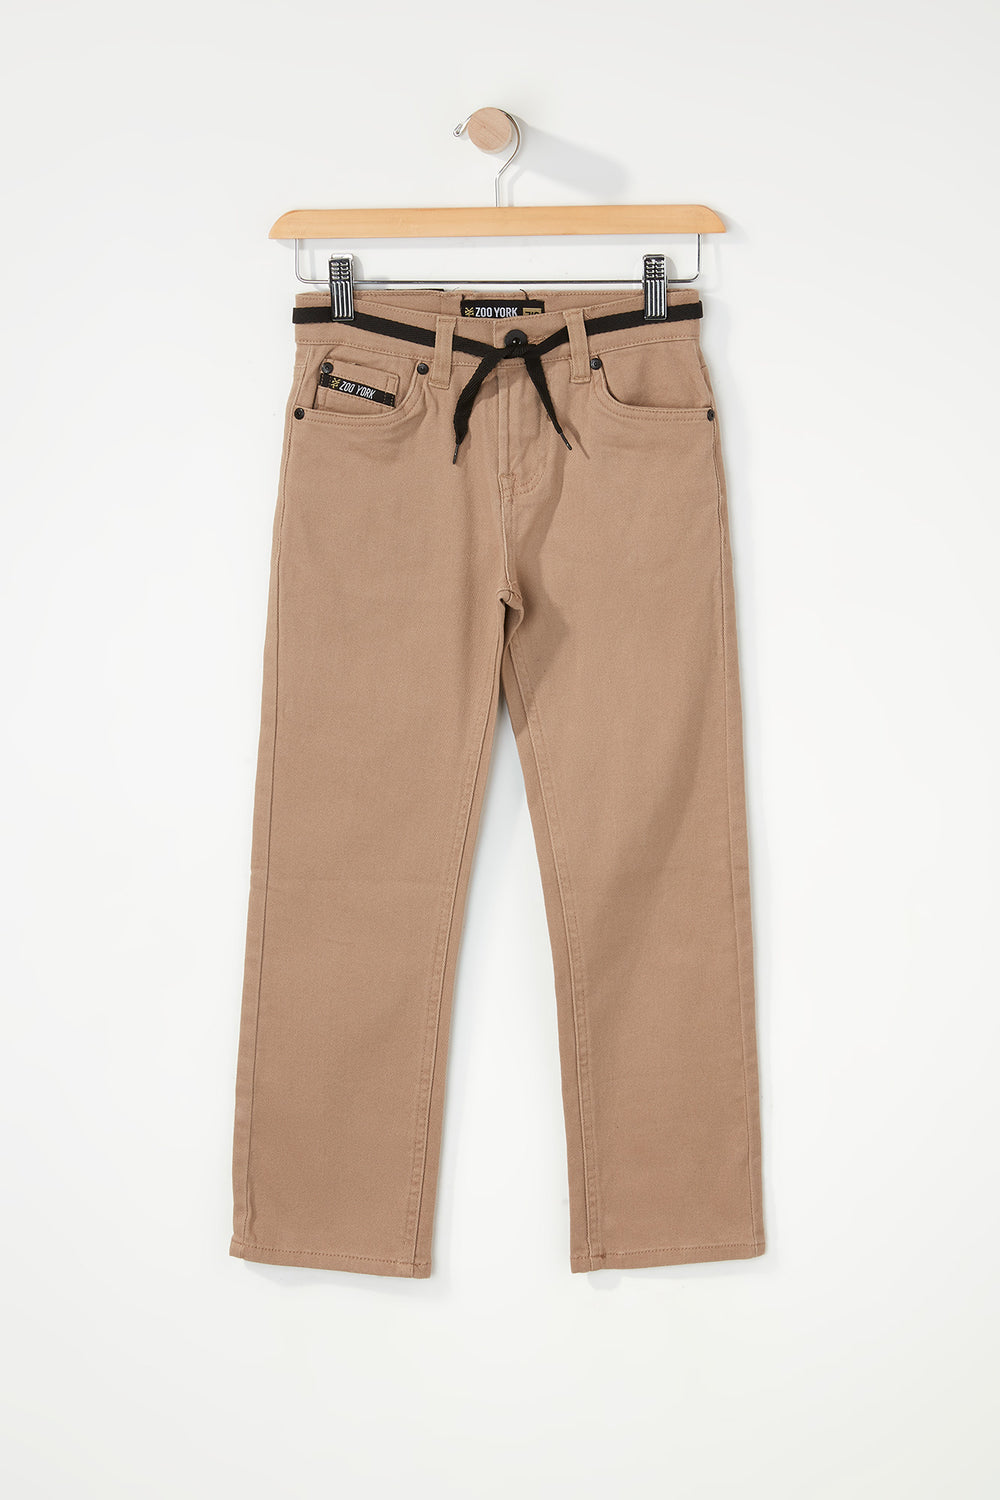 Zoo York Boys Stretch Slim Jeans Sand